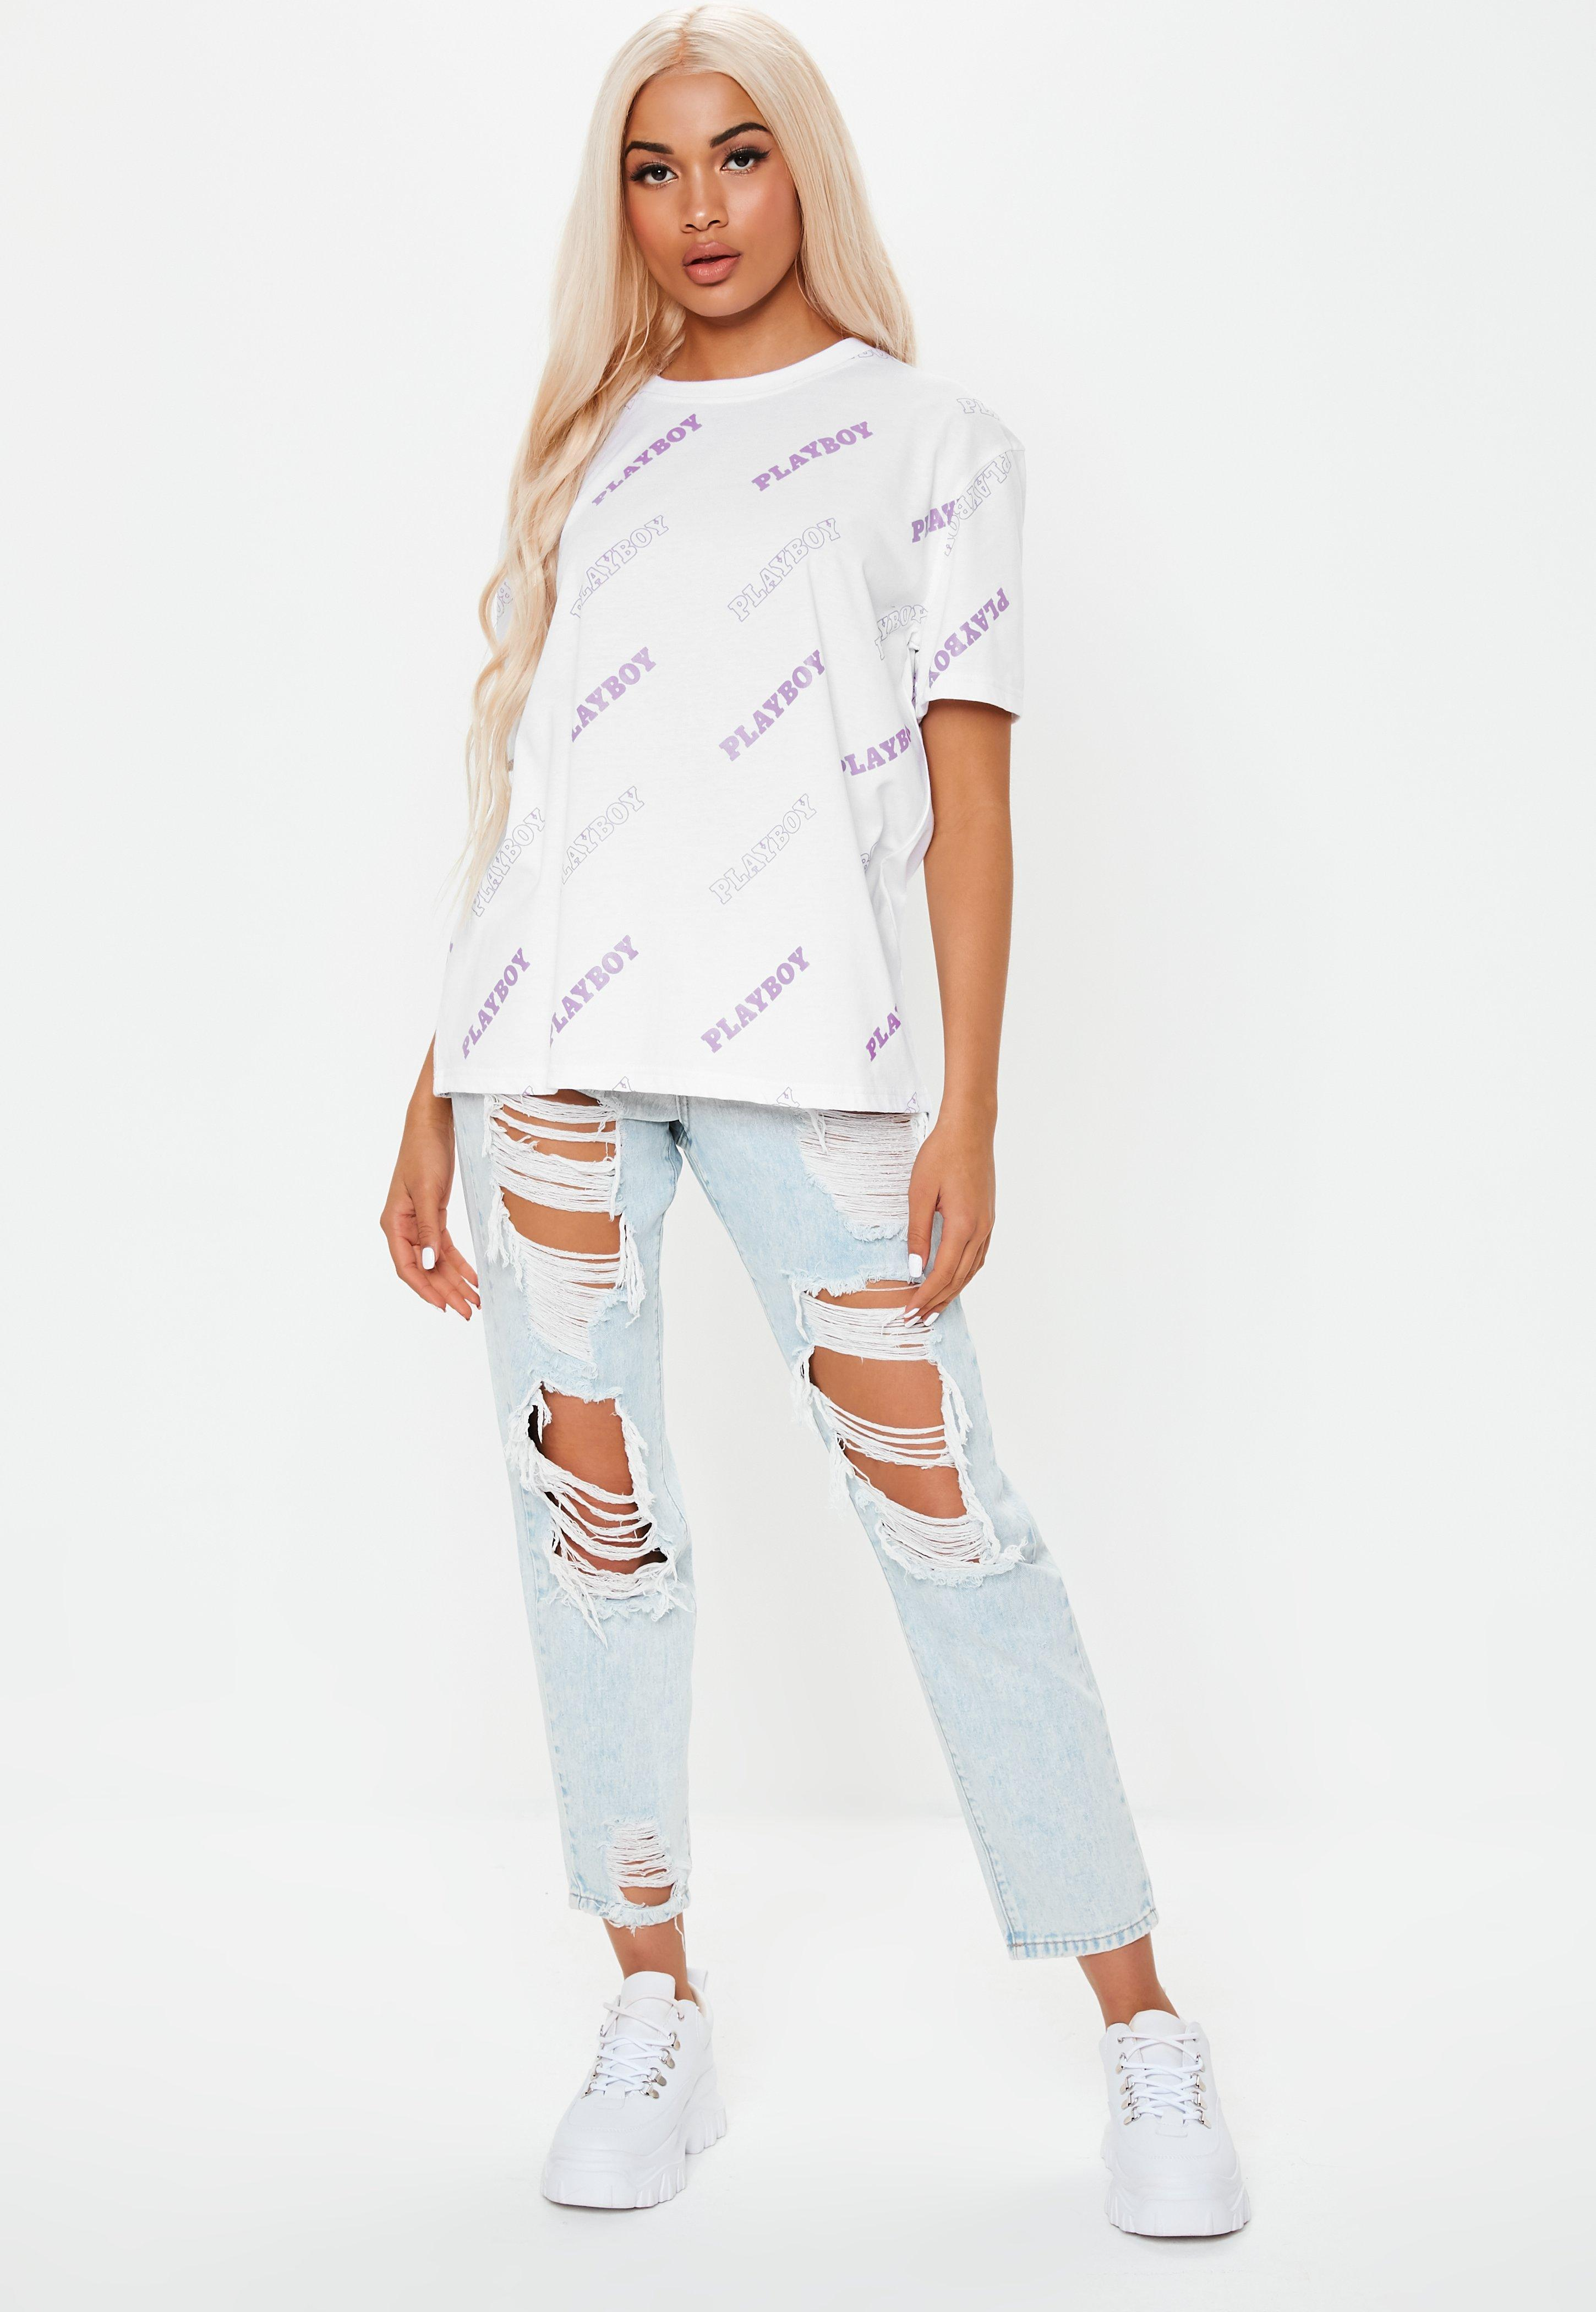 T-Shirts   Women s Tees - Missguided d3ef6777e